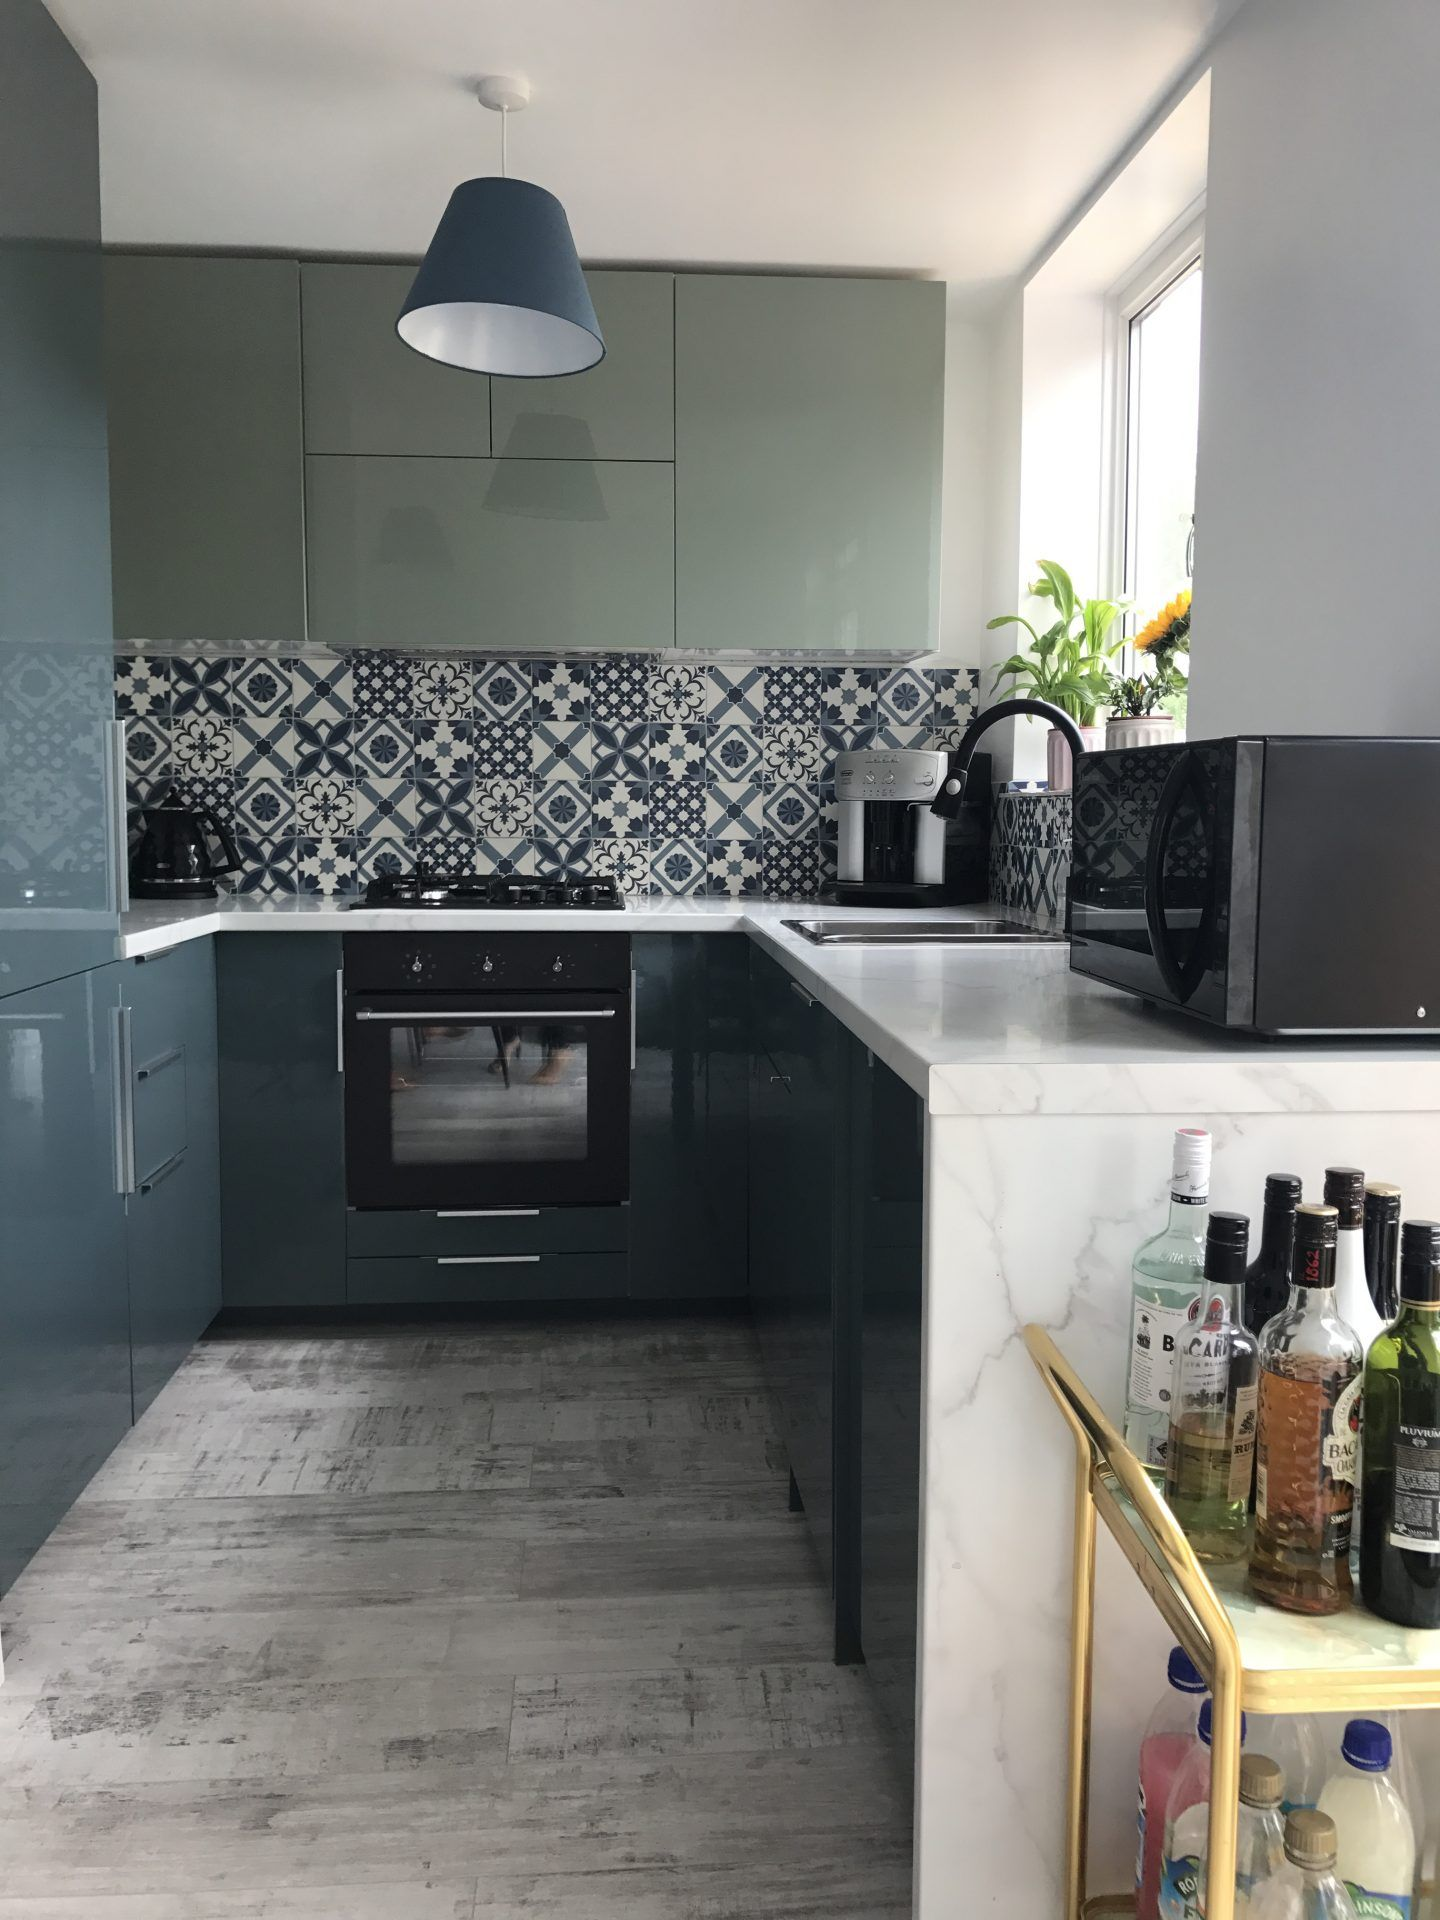 Kallarp Two Tone Blue And Green Kitchen Renovation Lvm